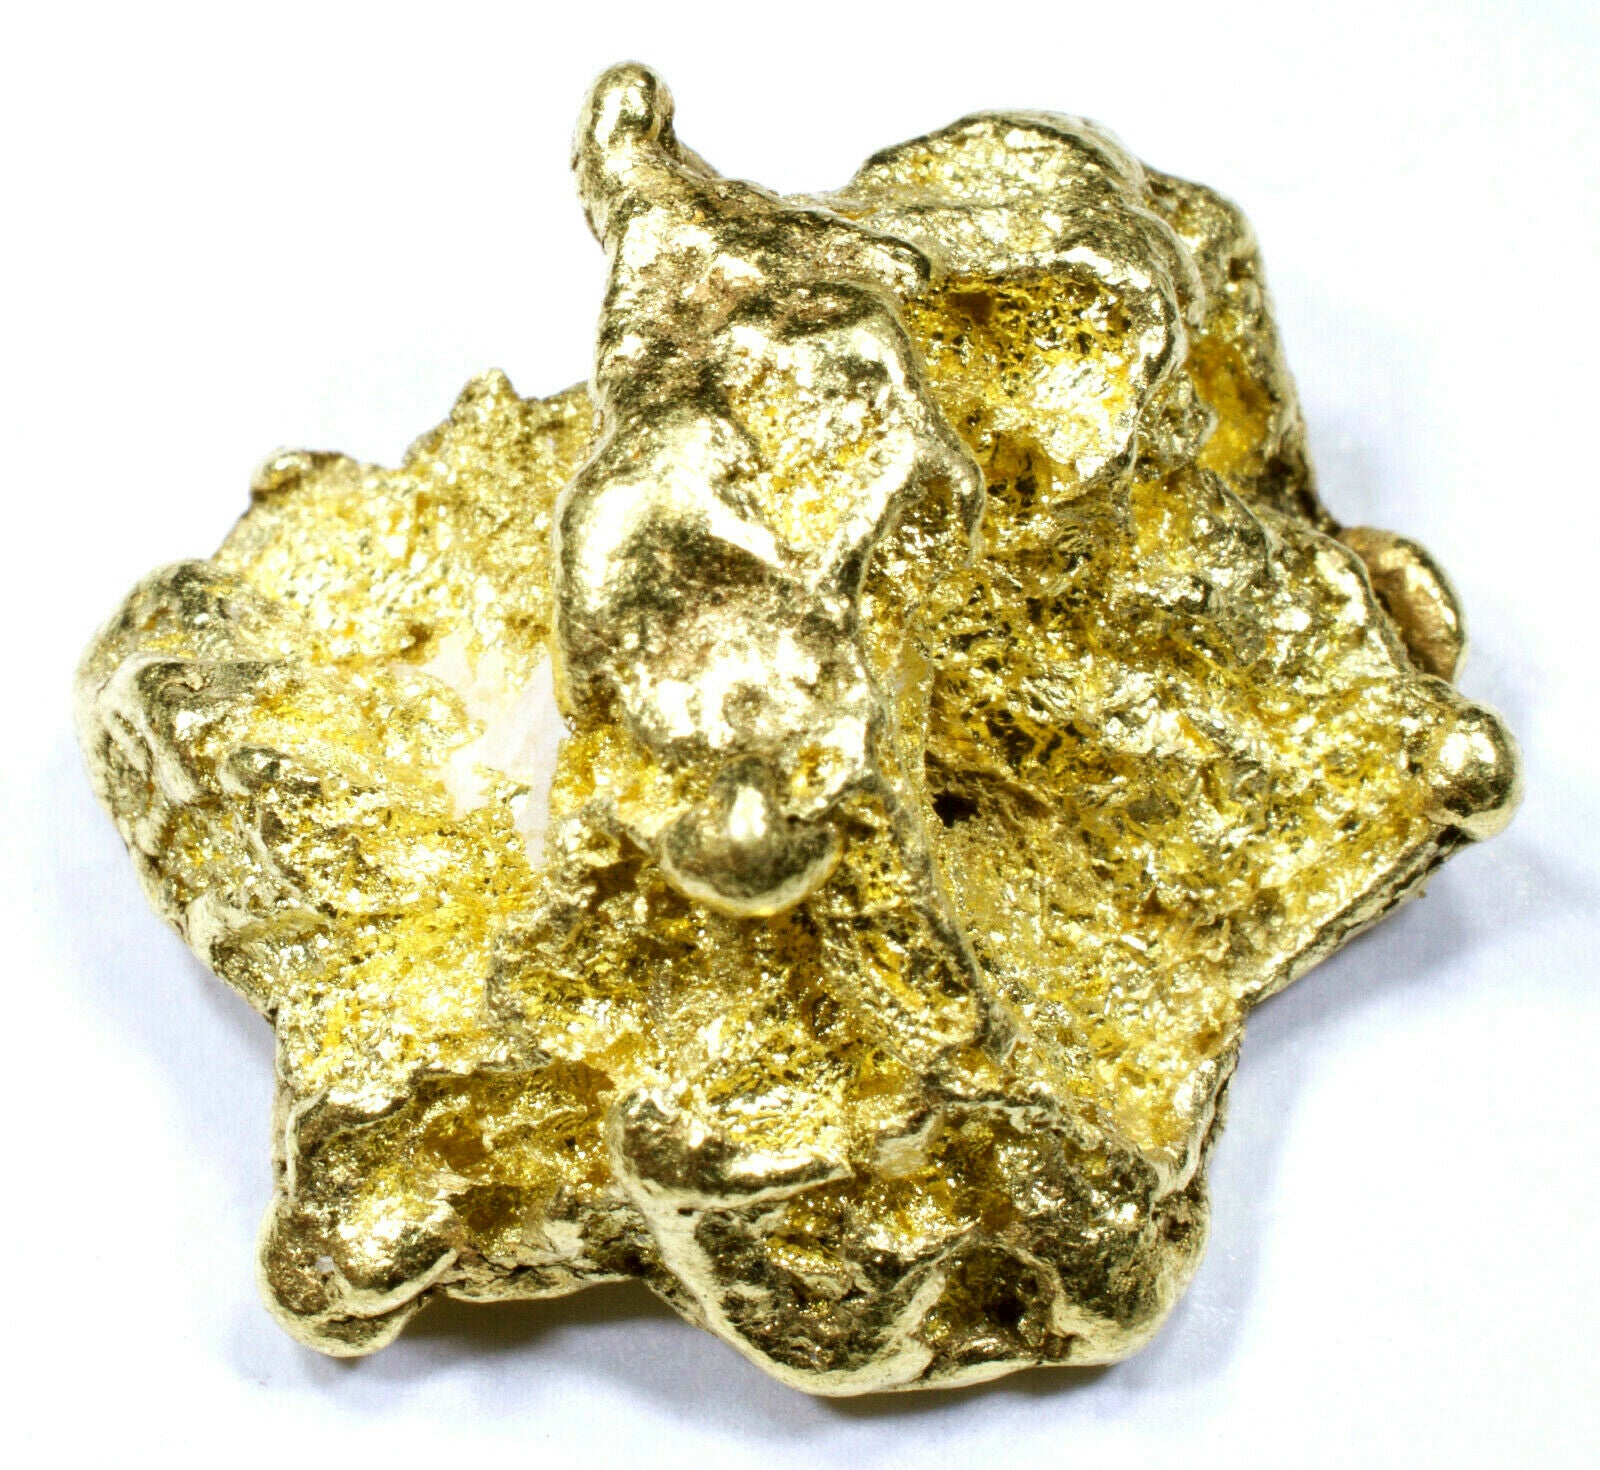 12.822 GRAMS ALASKAN YUKON NATURAL PURE GOLD NUGGET GENUINE (#N811) B GRADE